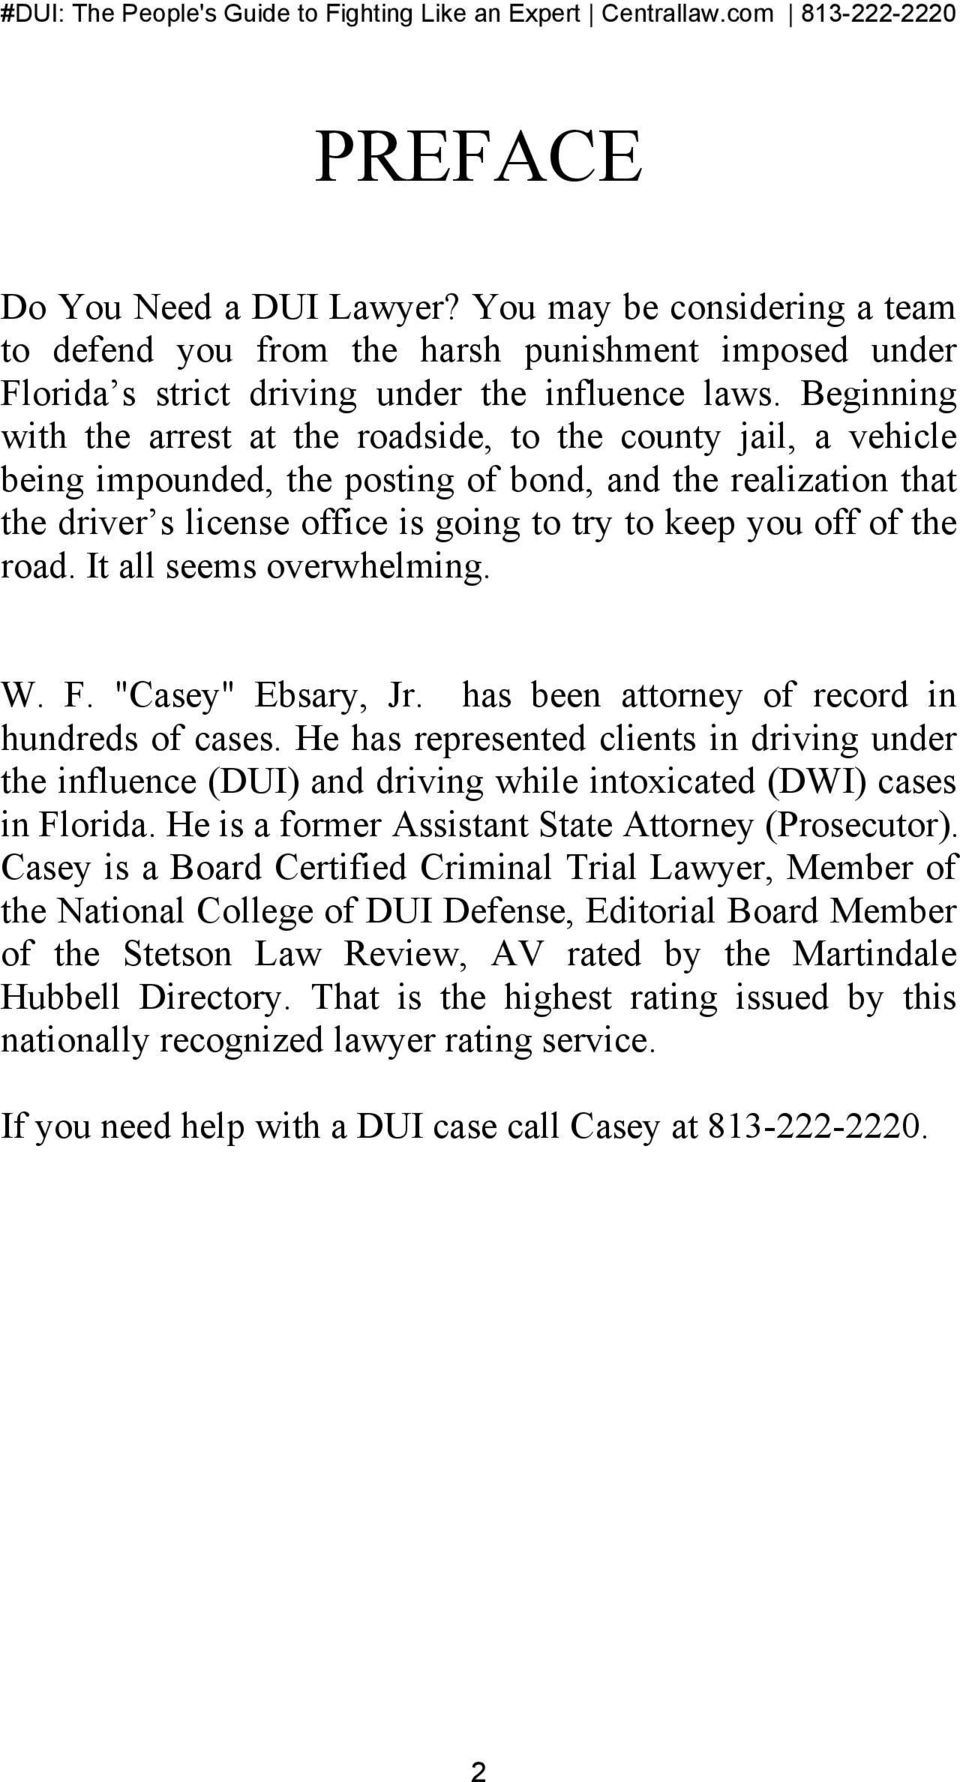 "the road. It all seems overwhelming. W. F. ""Casey"" Ebsary, Jr. has been attorney of record in hundreds of cases."